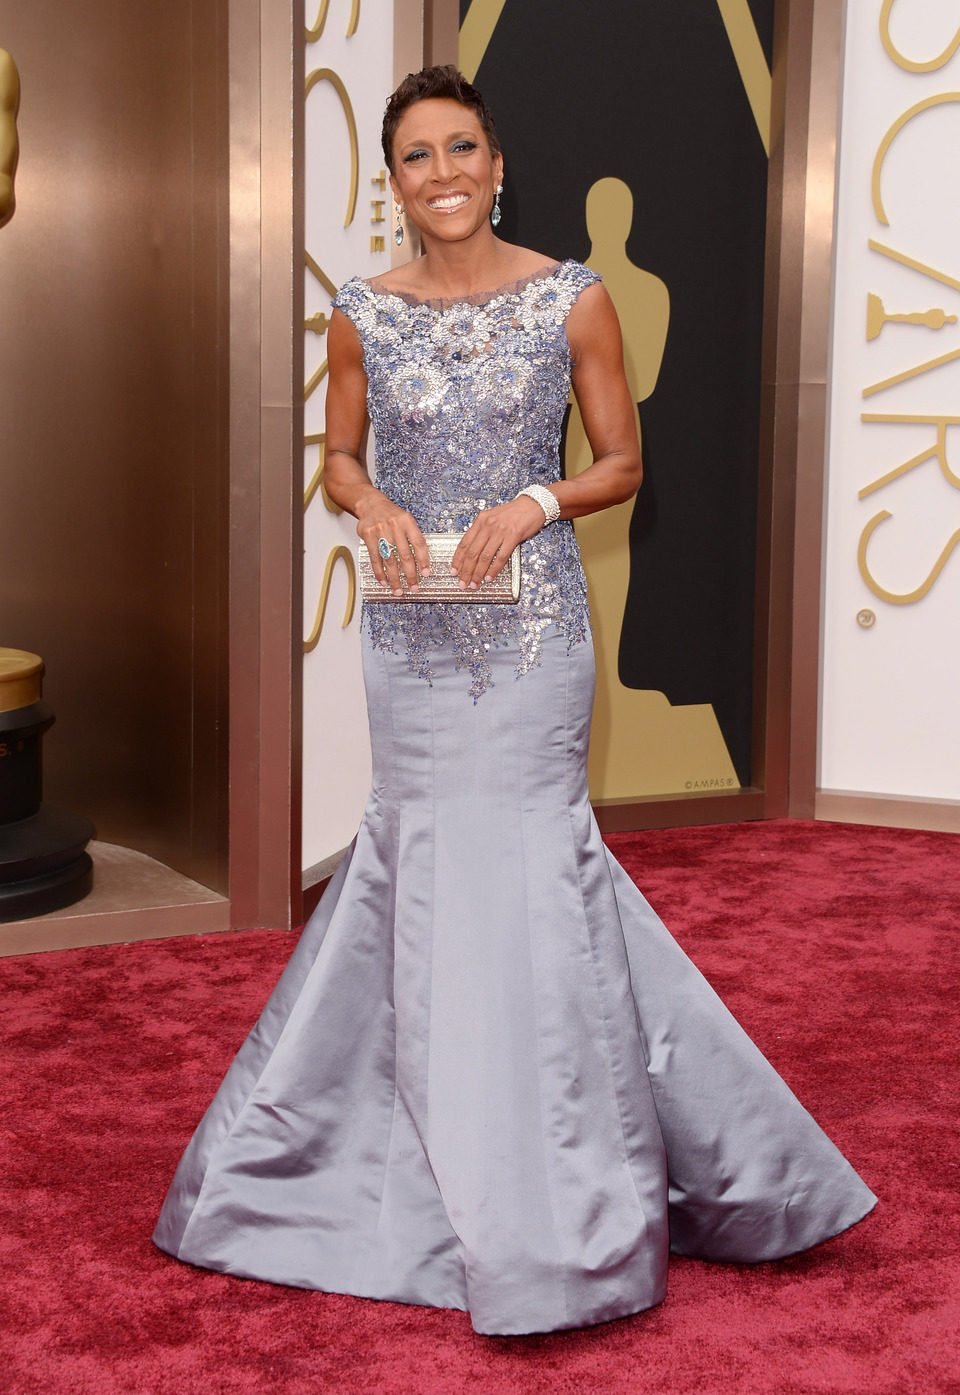 Robin Roberts at the 2014 Oscars